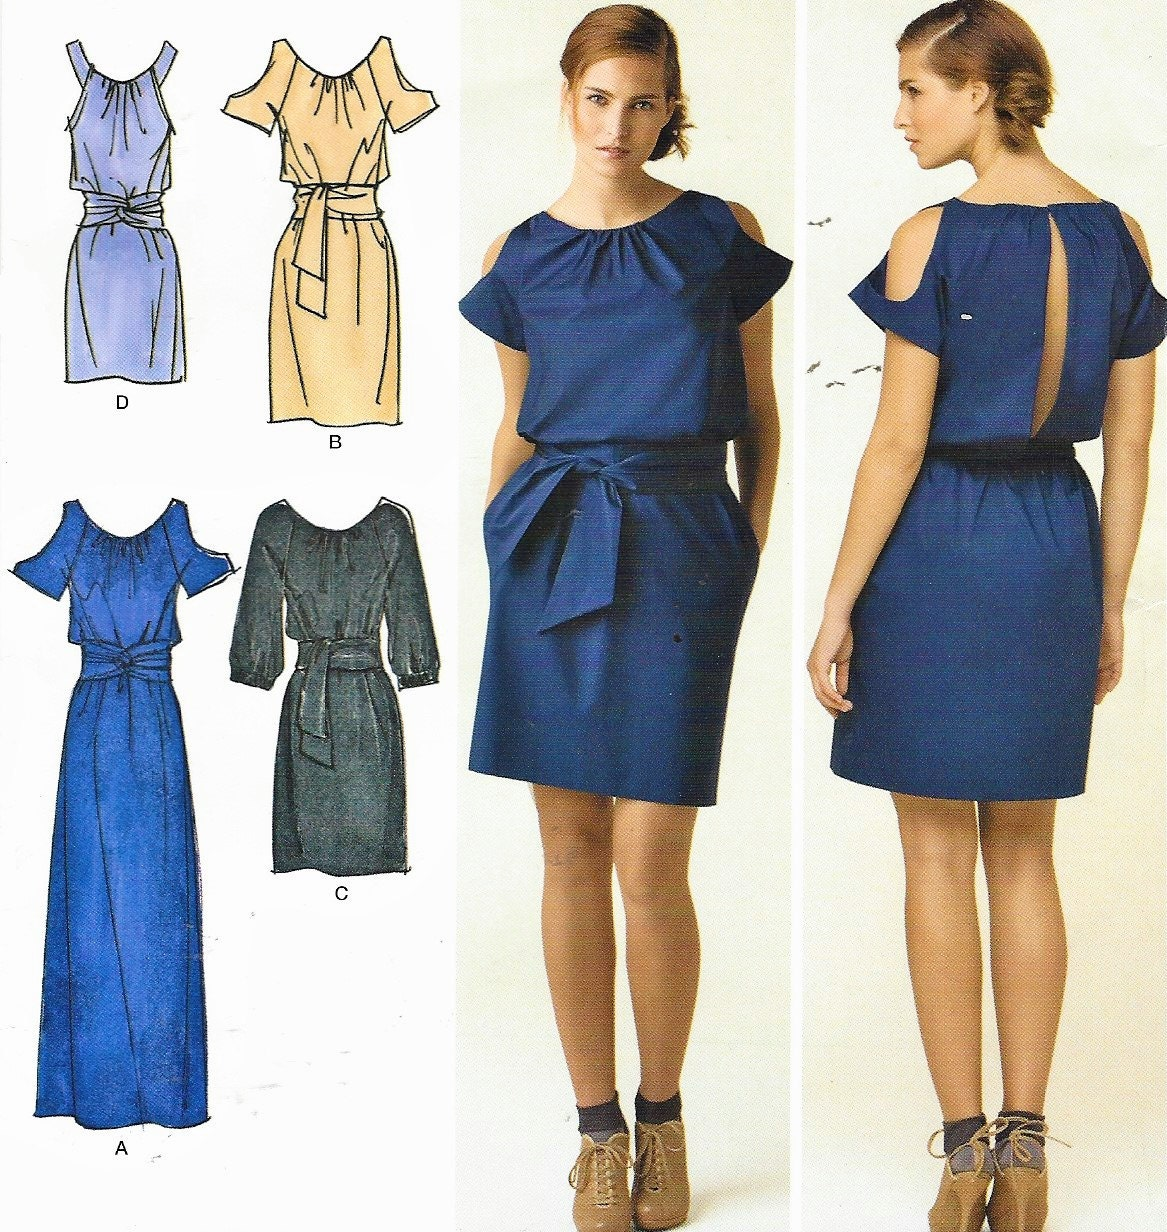 Cynthia Rowley Sewing Patterns: Cynthia Rowley Womens Dress In 3 Lengths With Sleeve